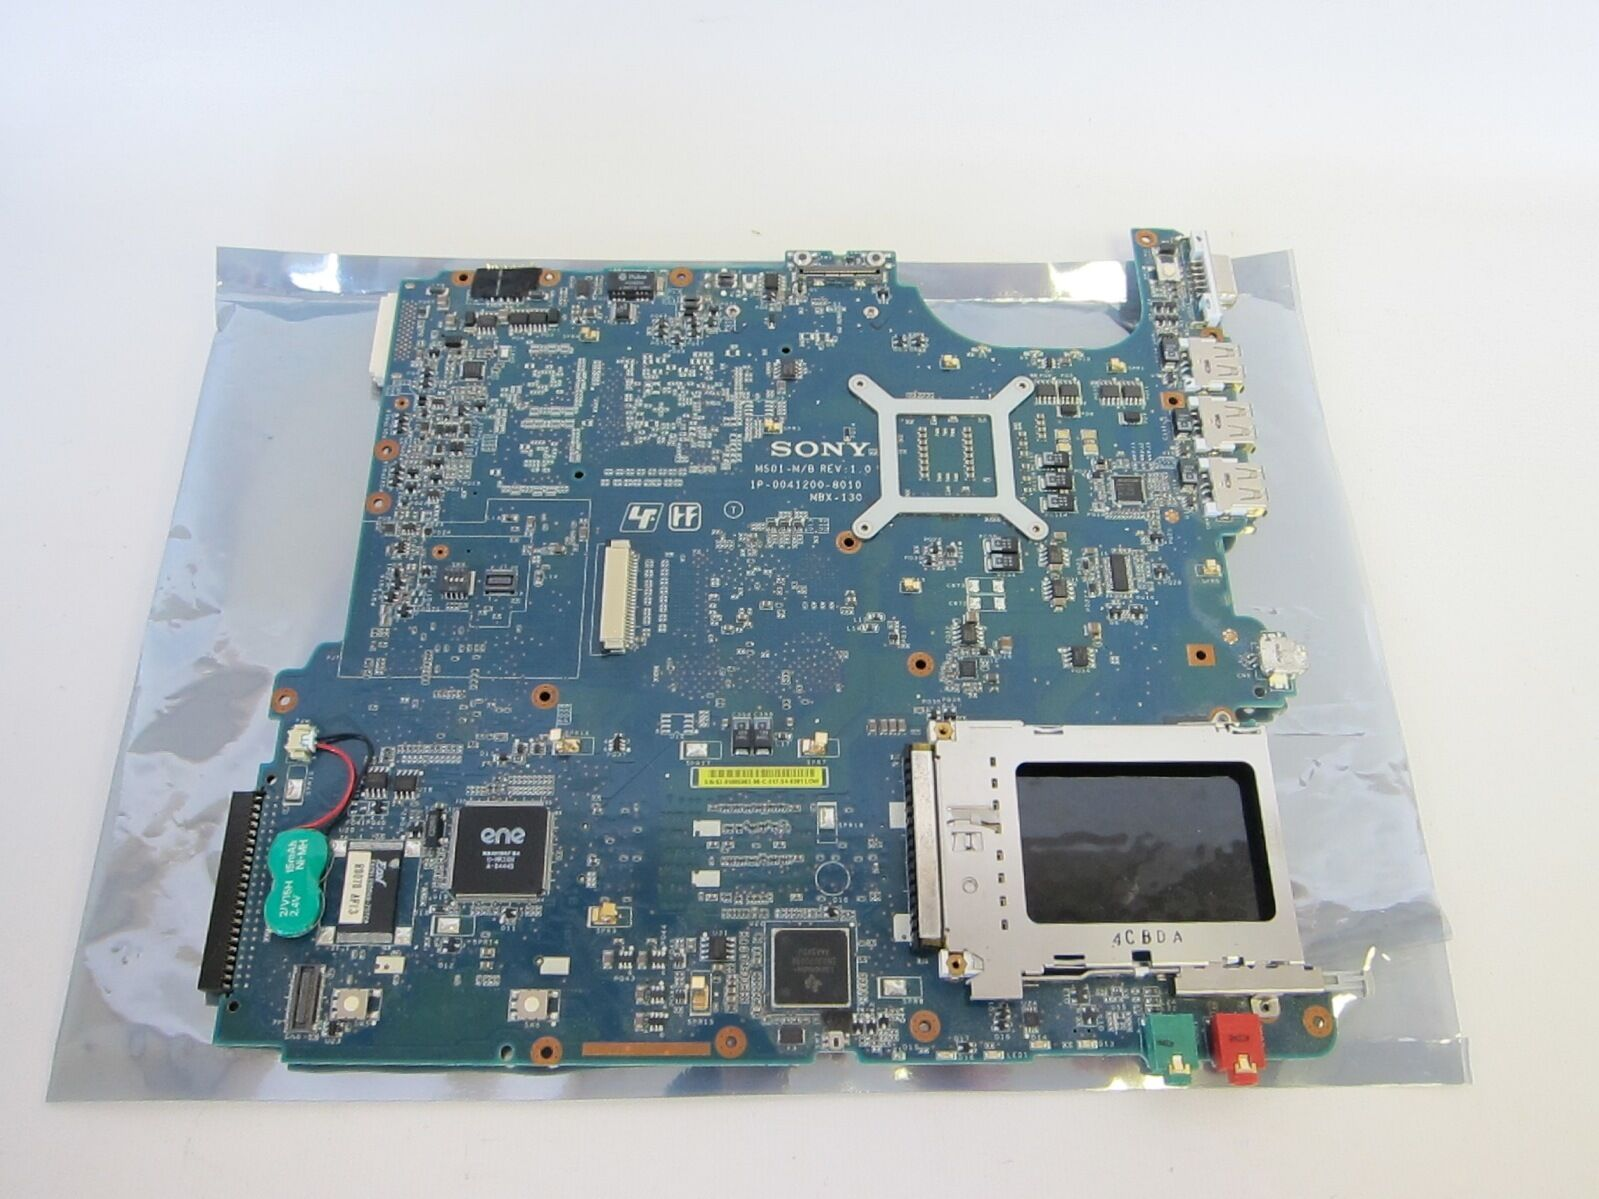 Sony MS01-M B 1P-0041200-8010 Motherboard Rev 1.0 1P00412008010 MS01MB